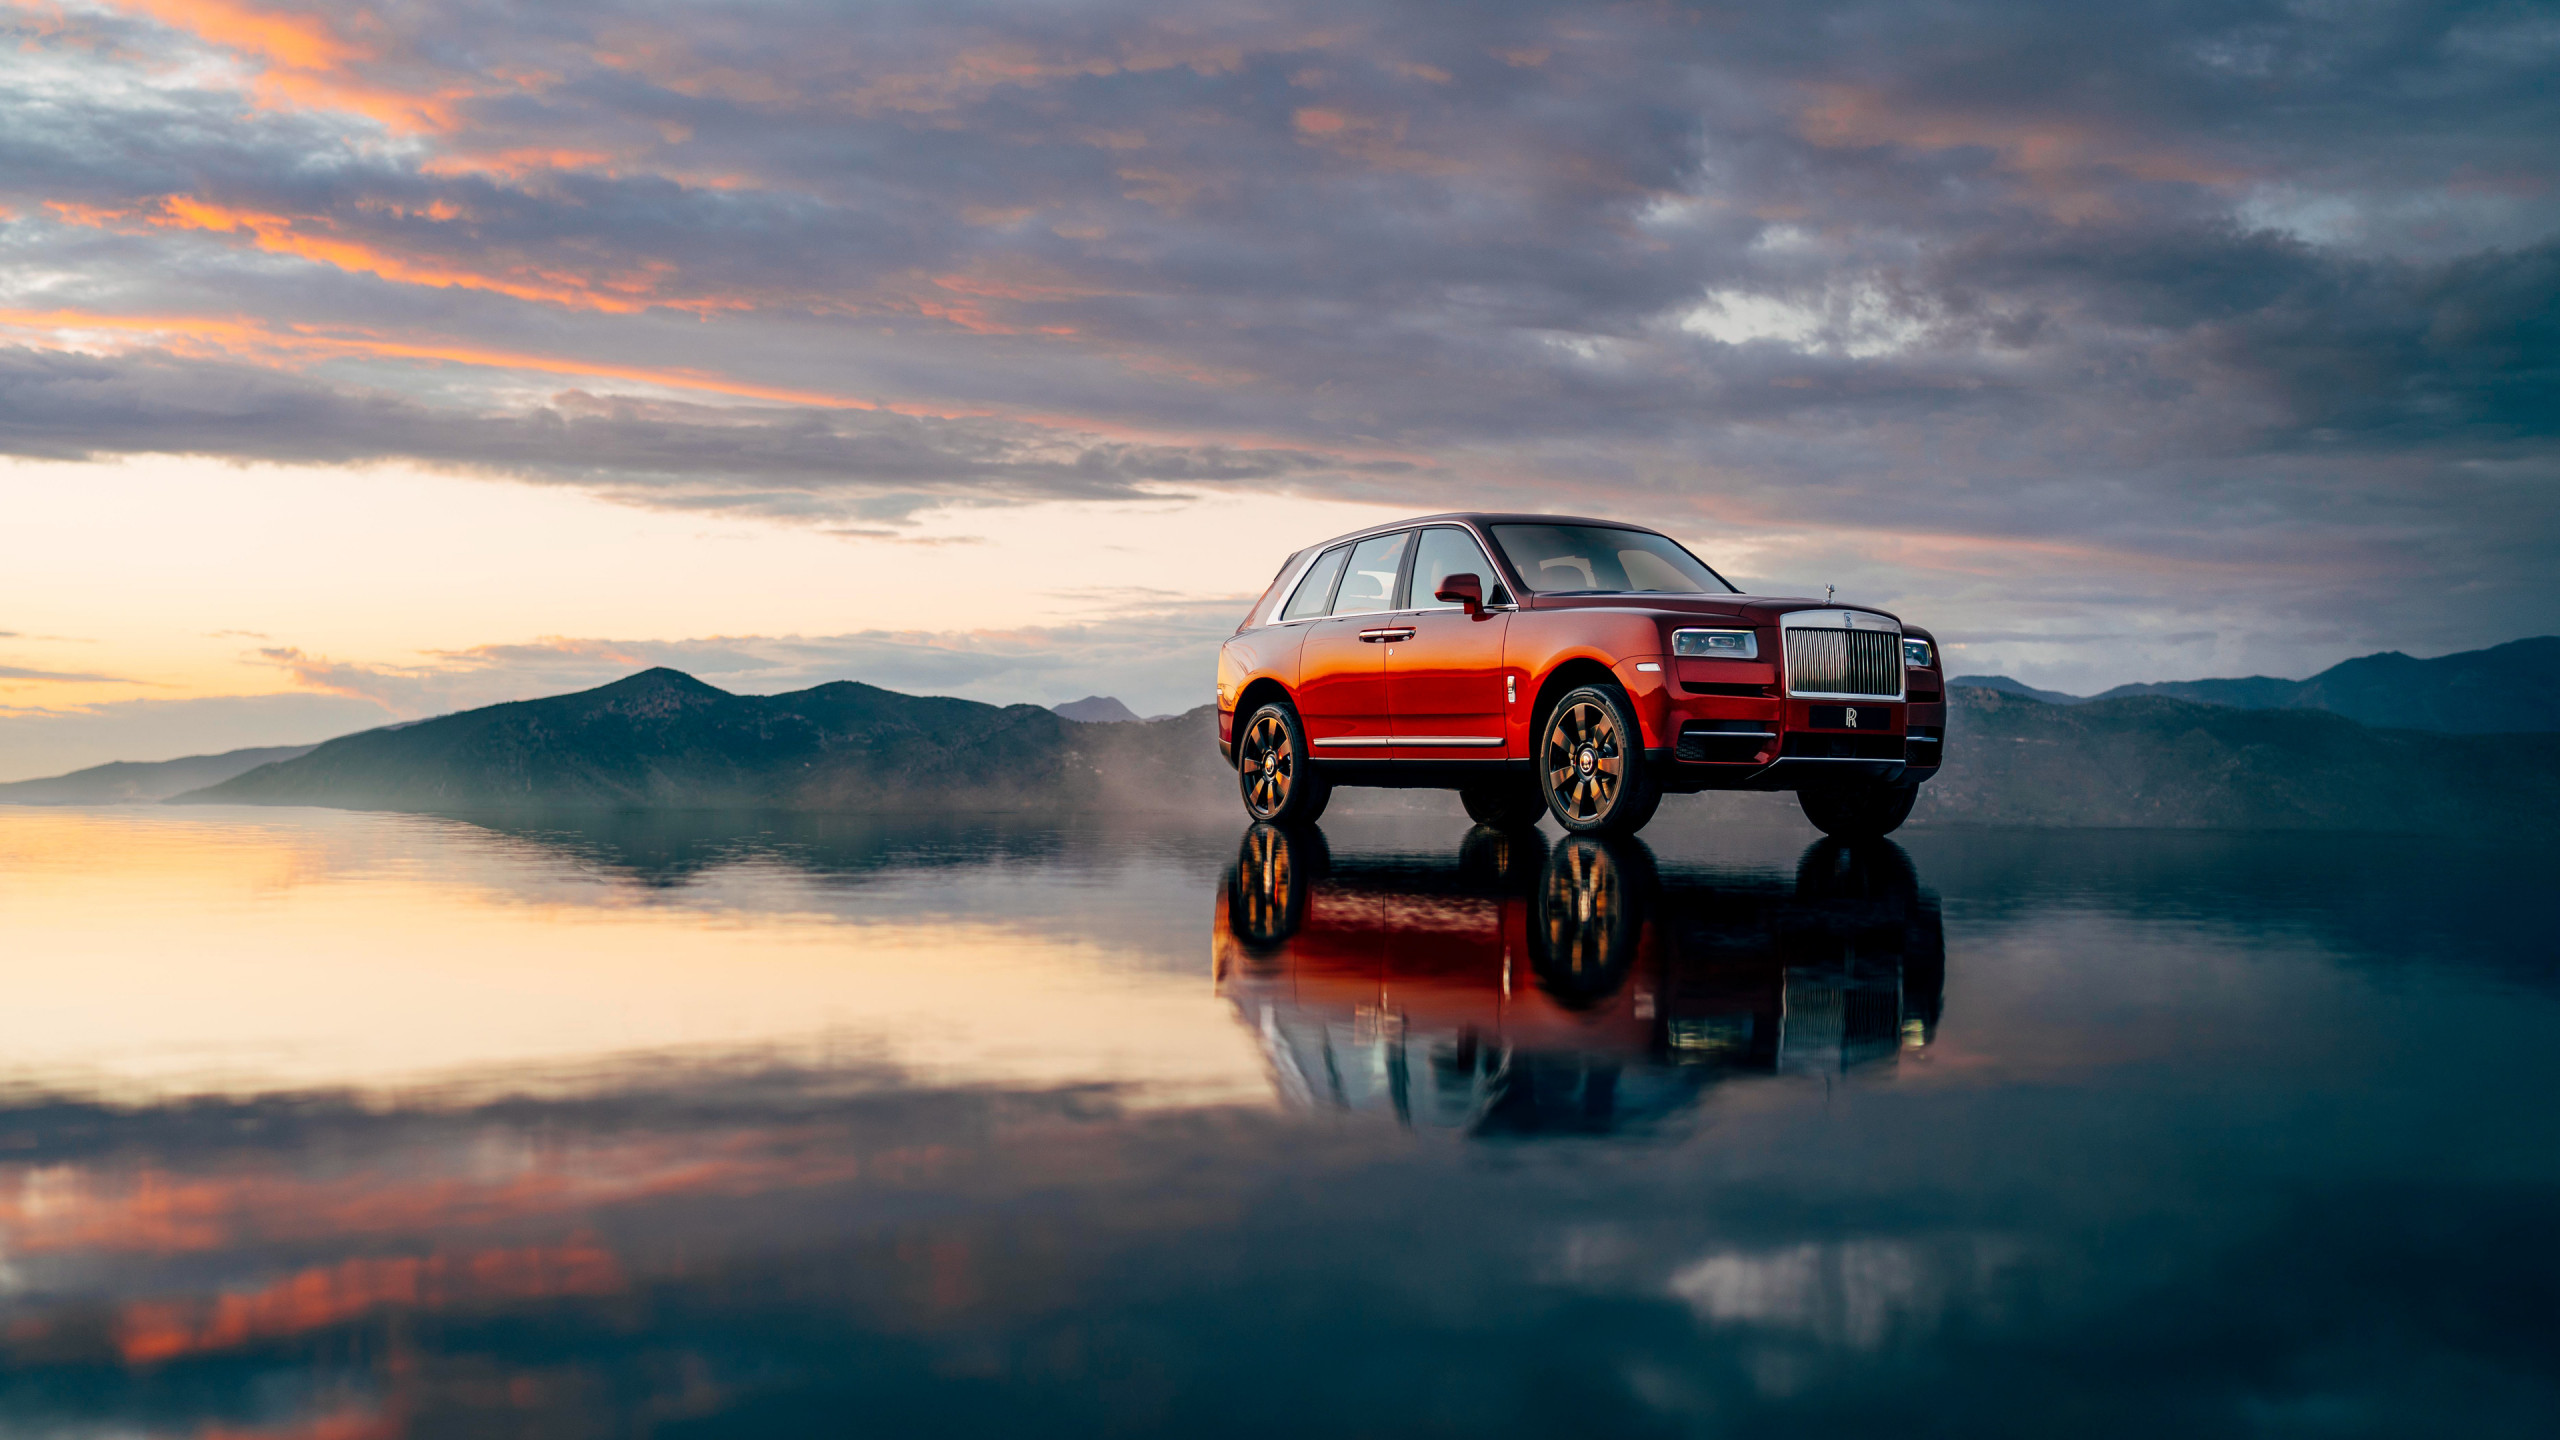 Rolls Royce Cullinan wallpaper 2560x1440